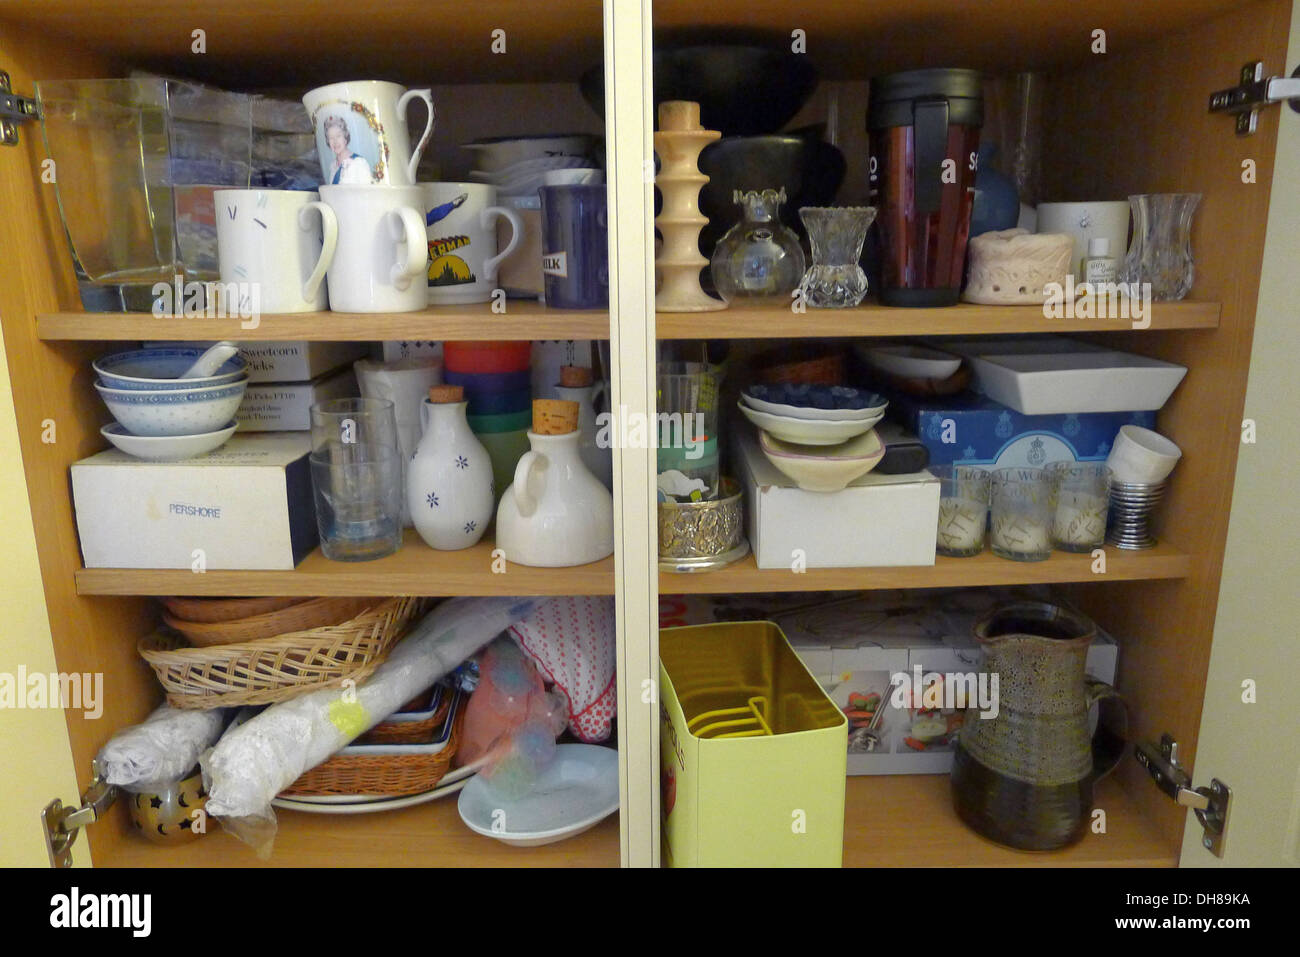 Messy Kitchen Cupboard - Stock Image